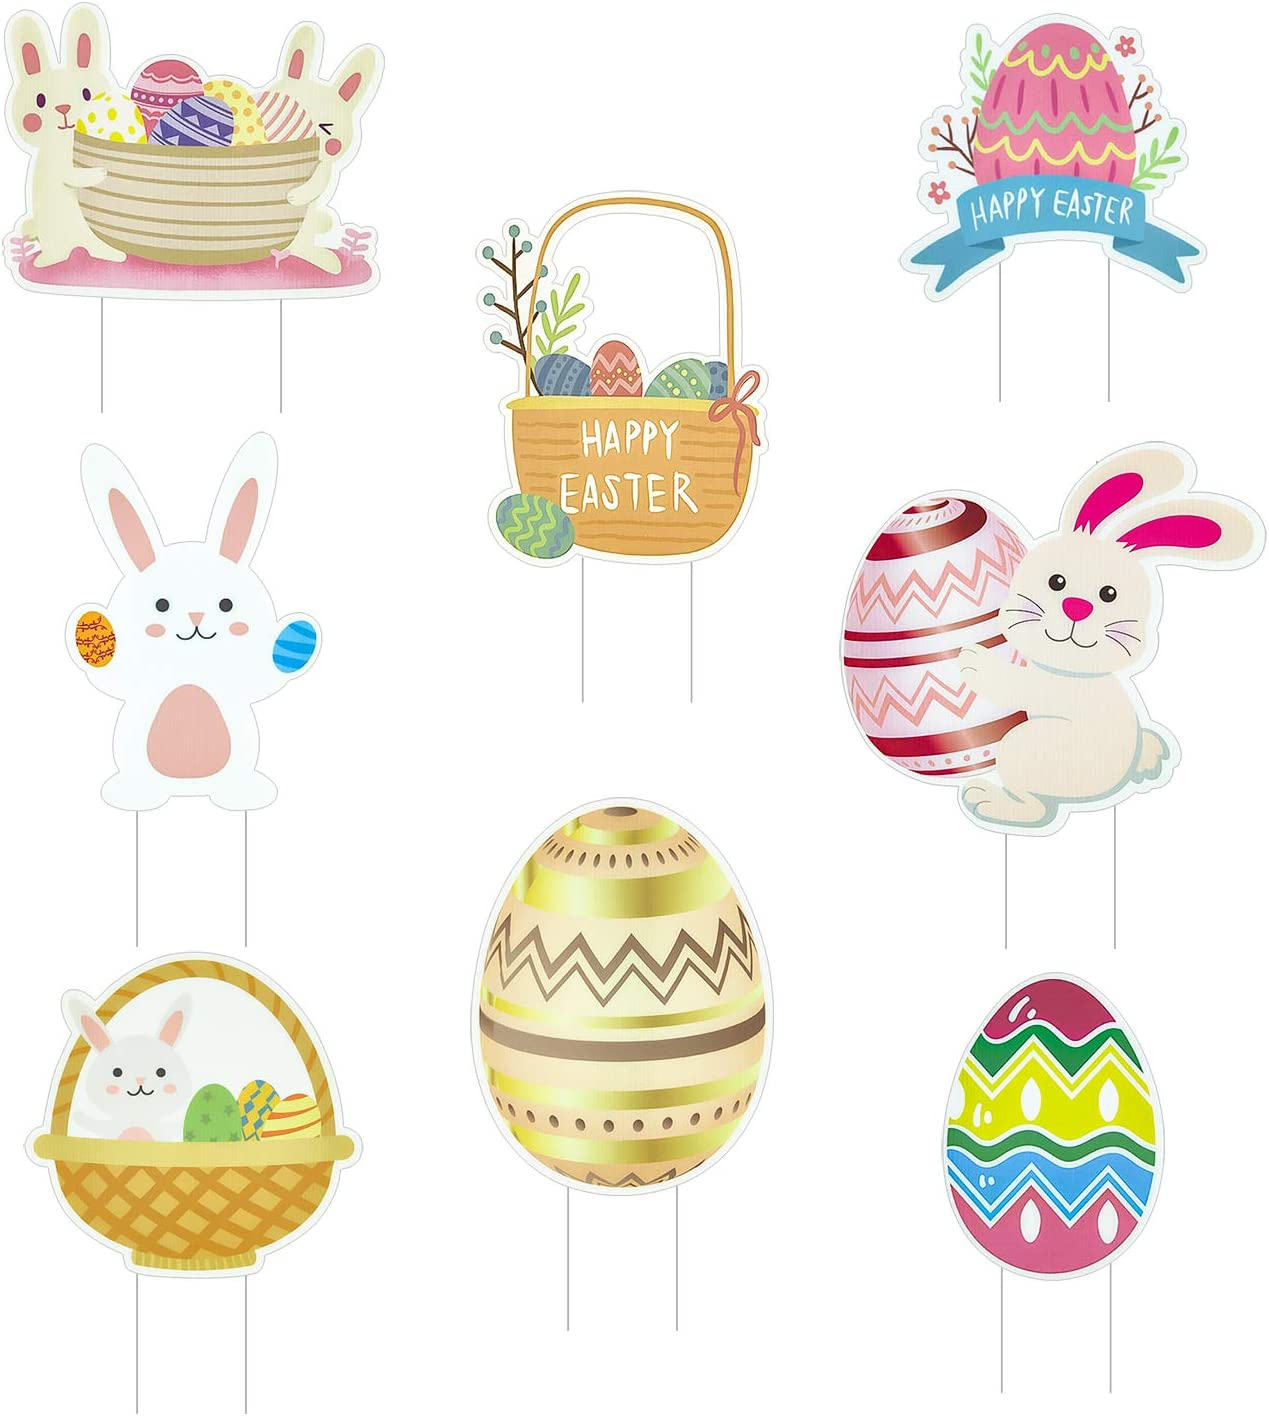 CAVLA Pack of 8 Easter Yard Signs Decorations Bunny Eggs Easter Lawn Decorations Easter Props with Stakes for Lawn Yard Decorations Easter Garden Decor Easter Eggs Hunt Game Party Supplies